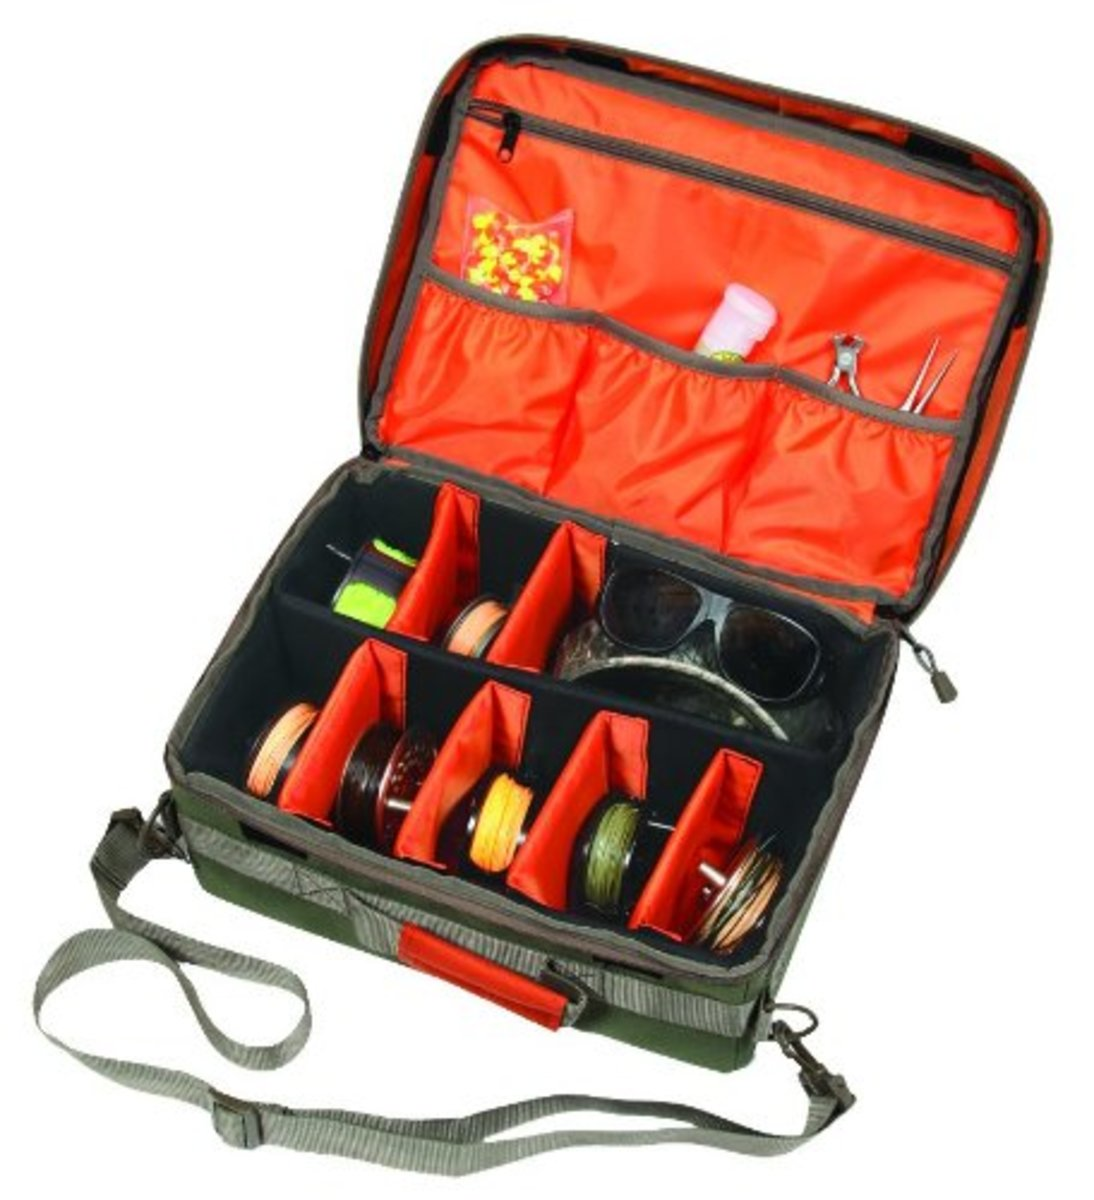 This Big Fork Fishing Reel and Gear Bag is perfect for dads who love the color red